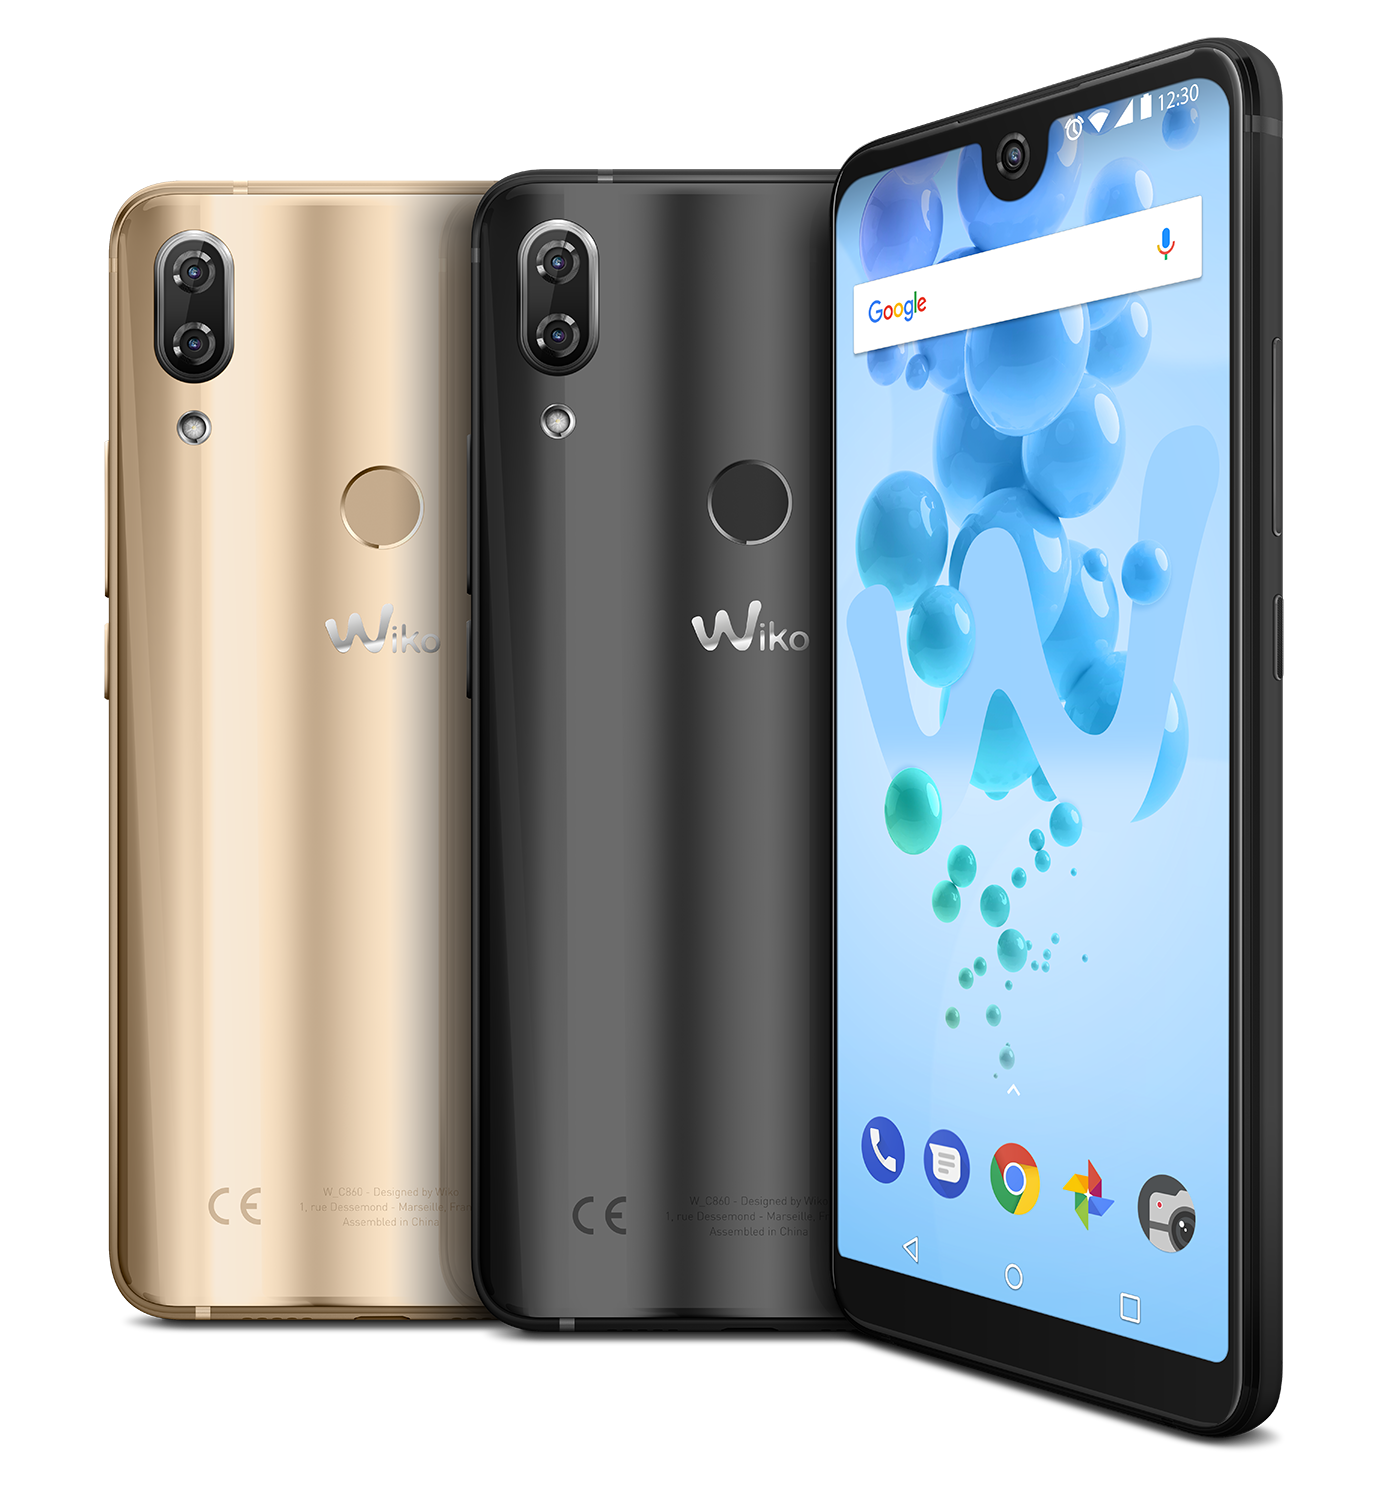 Wiko_MWC2018_View-2-Pro_All-Colors-02_LD